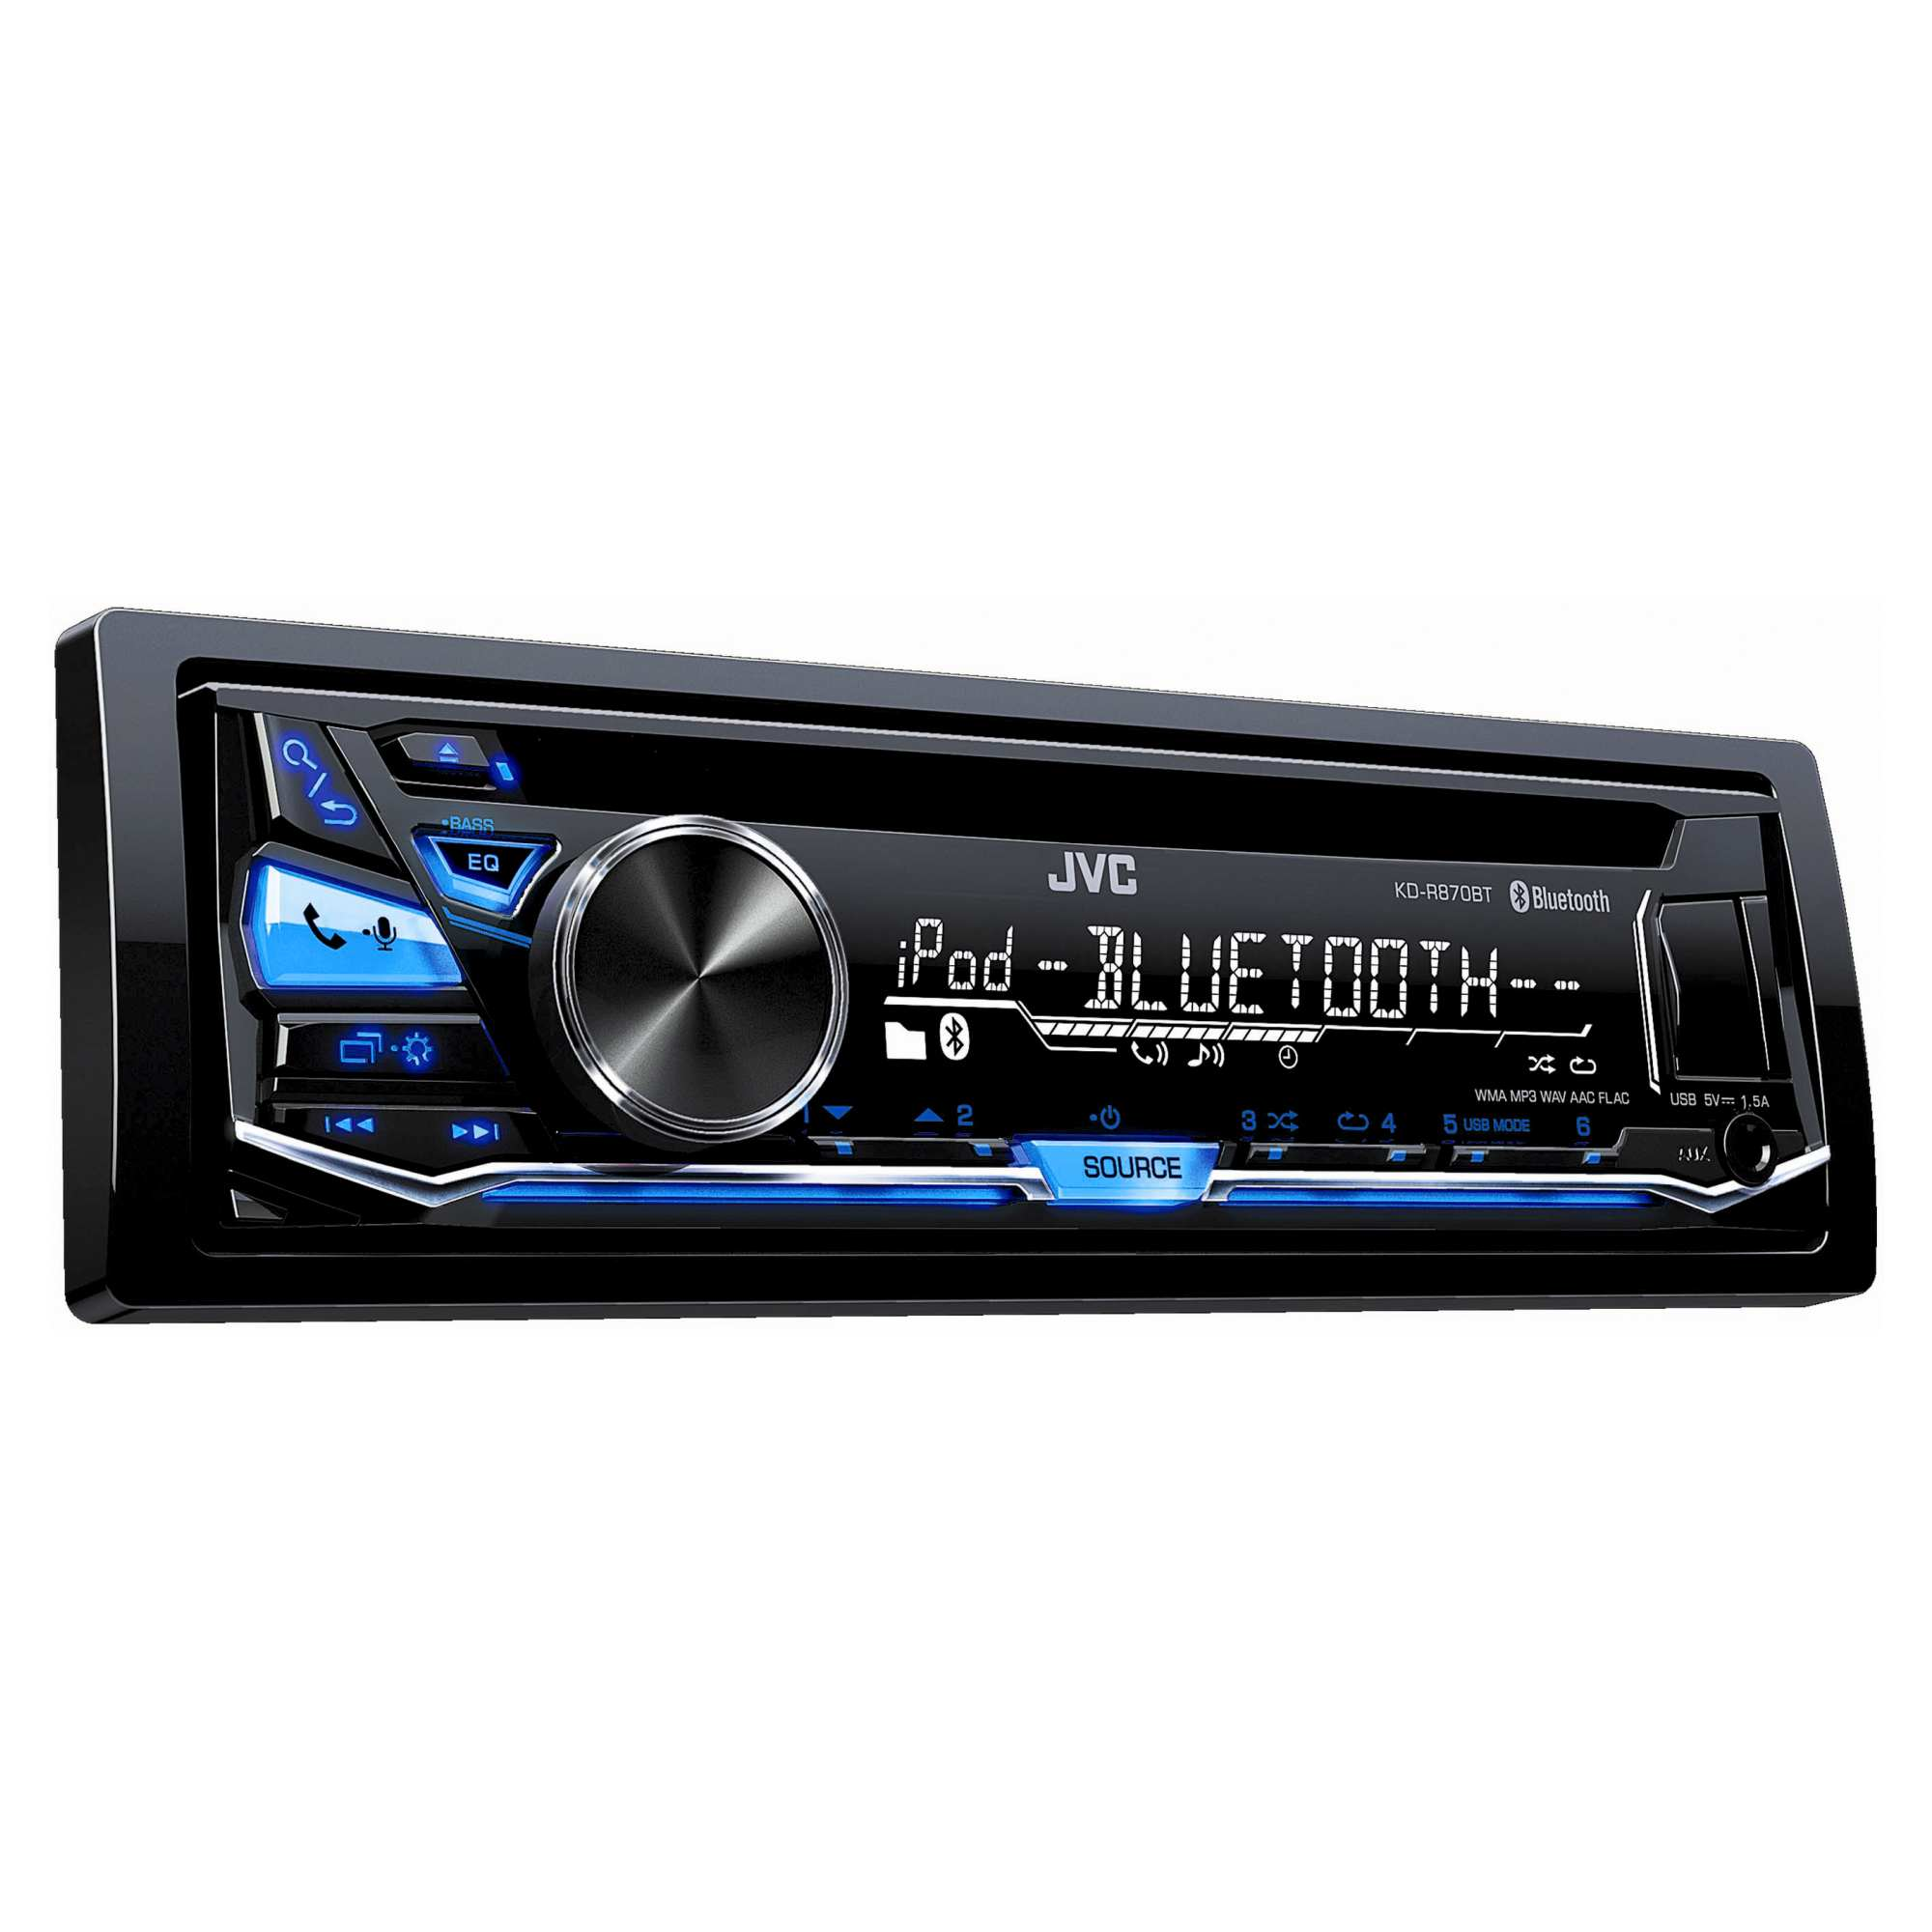 Jvc Car Stereo Wiring Diagram Kd R870bt Electrical Commodore To Harness Download Diagrams U2022 2006 Chevy